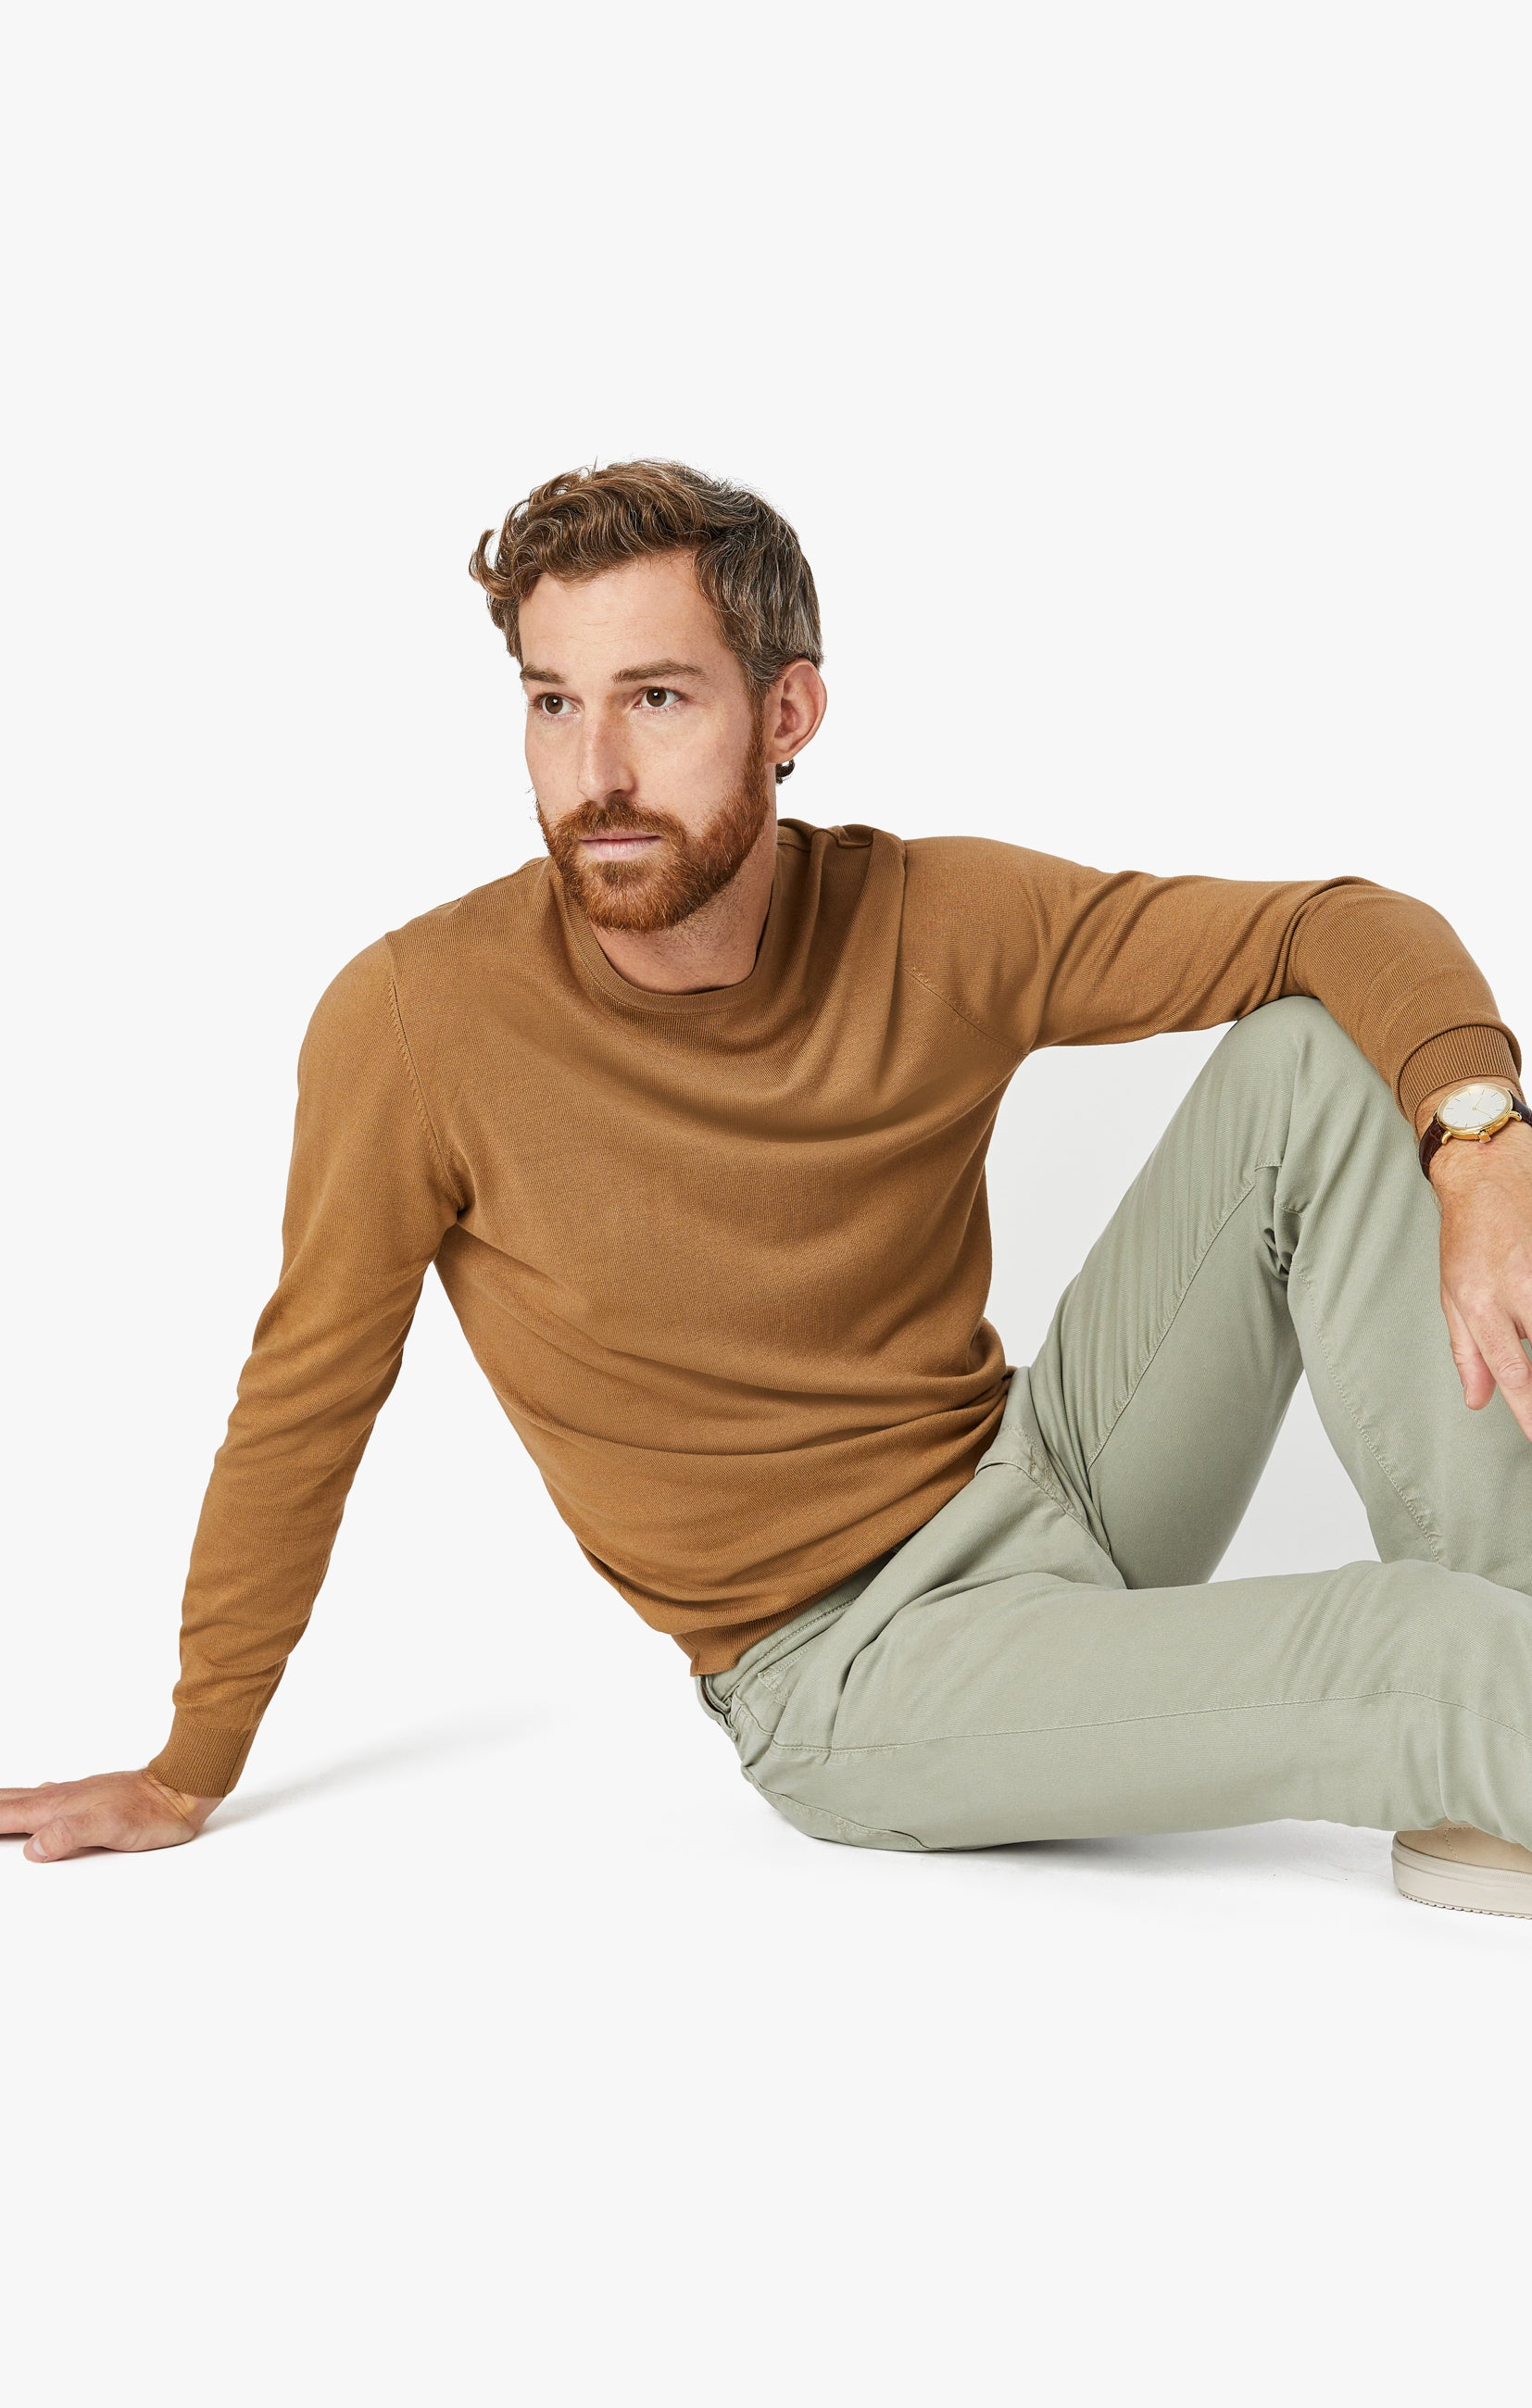 Courage Straight Leg Pants in Sage Soft Touch Image 1